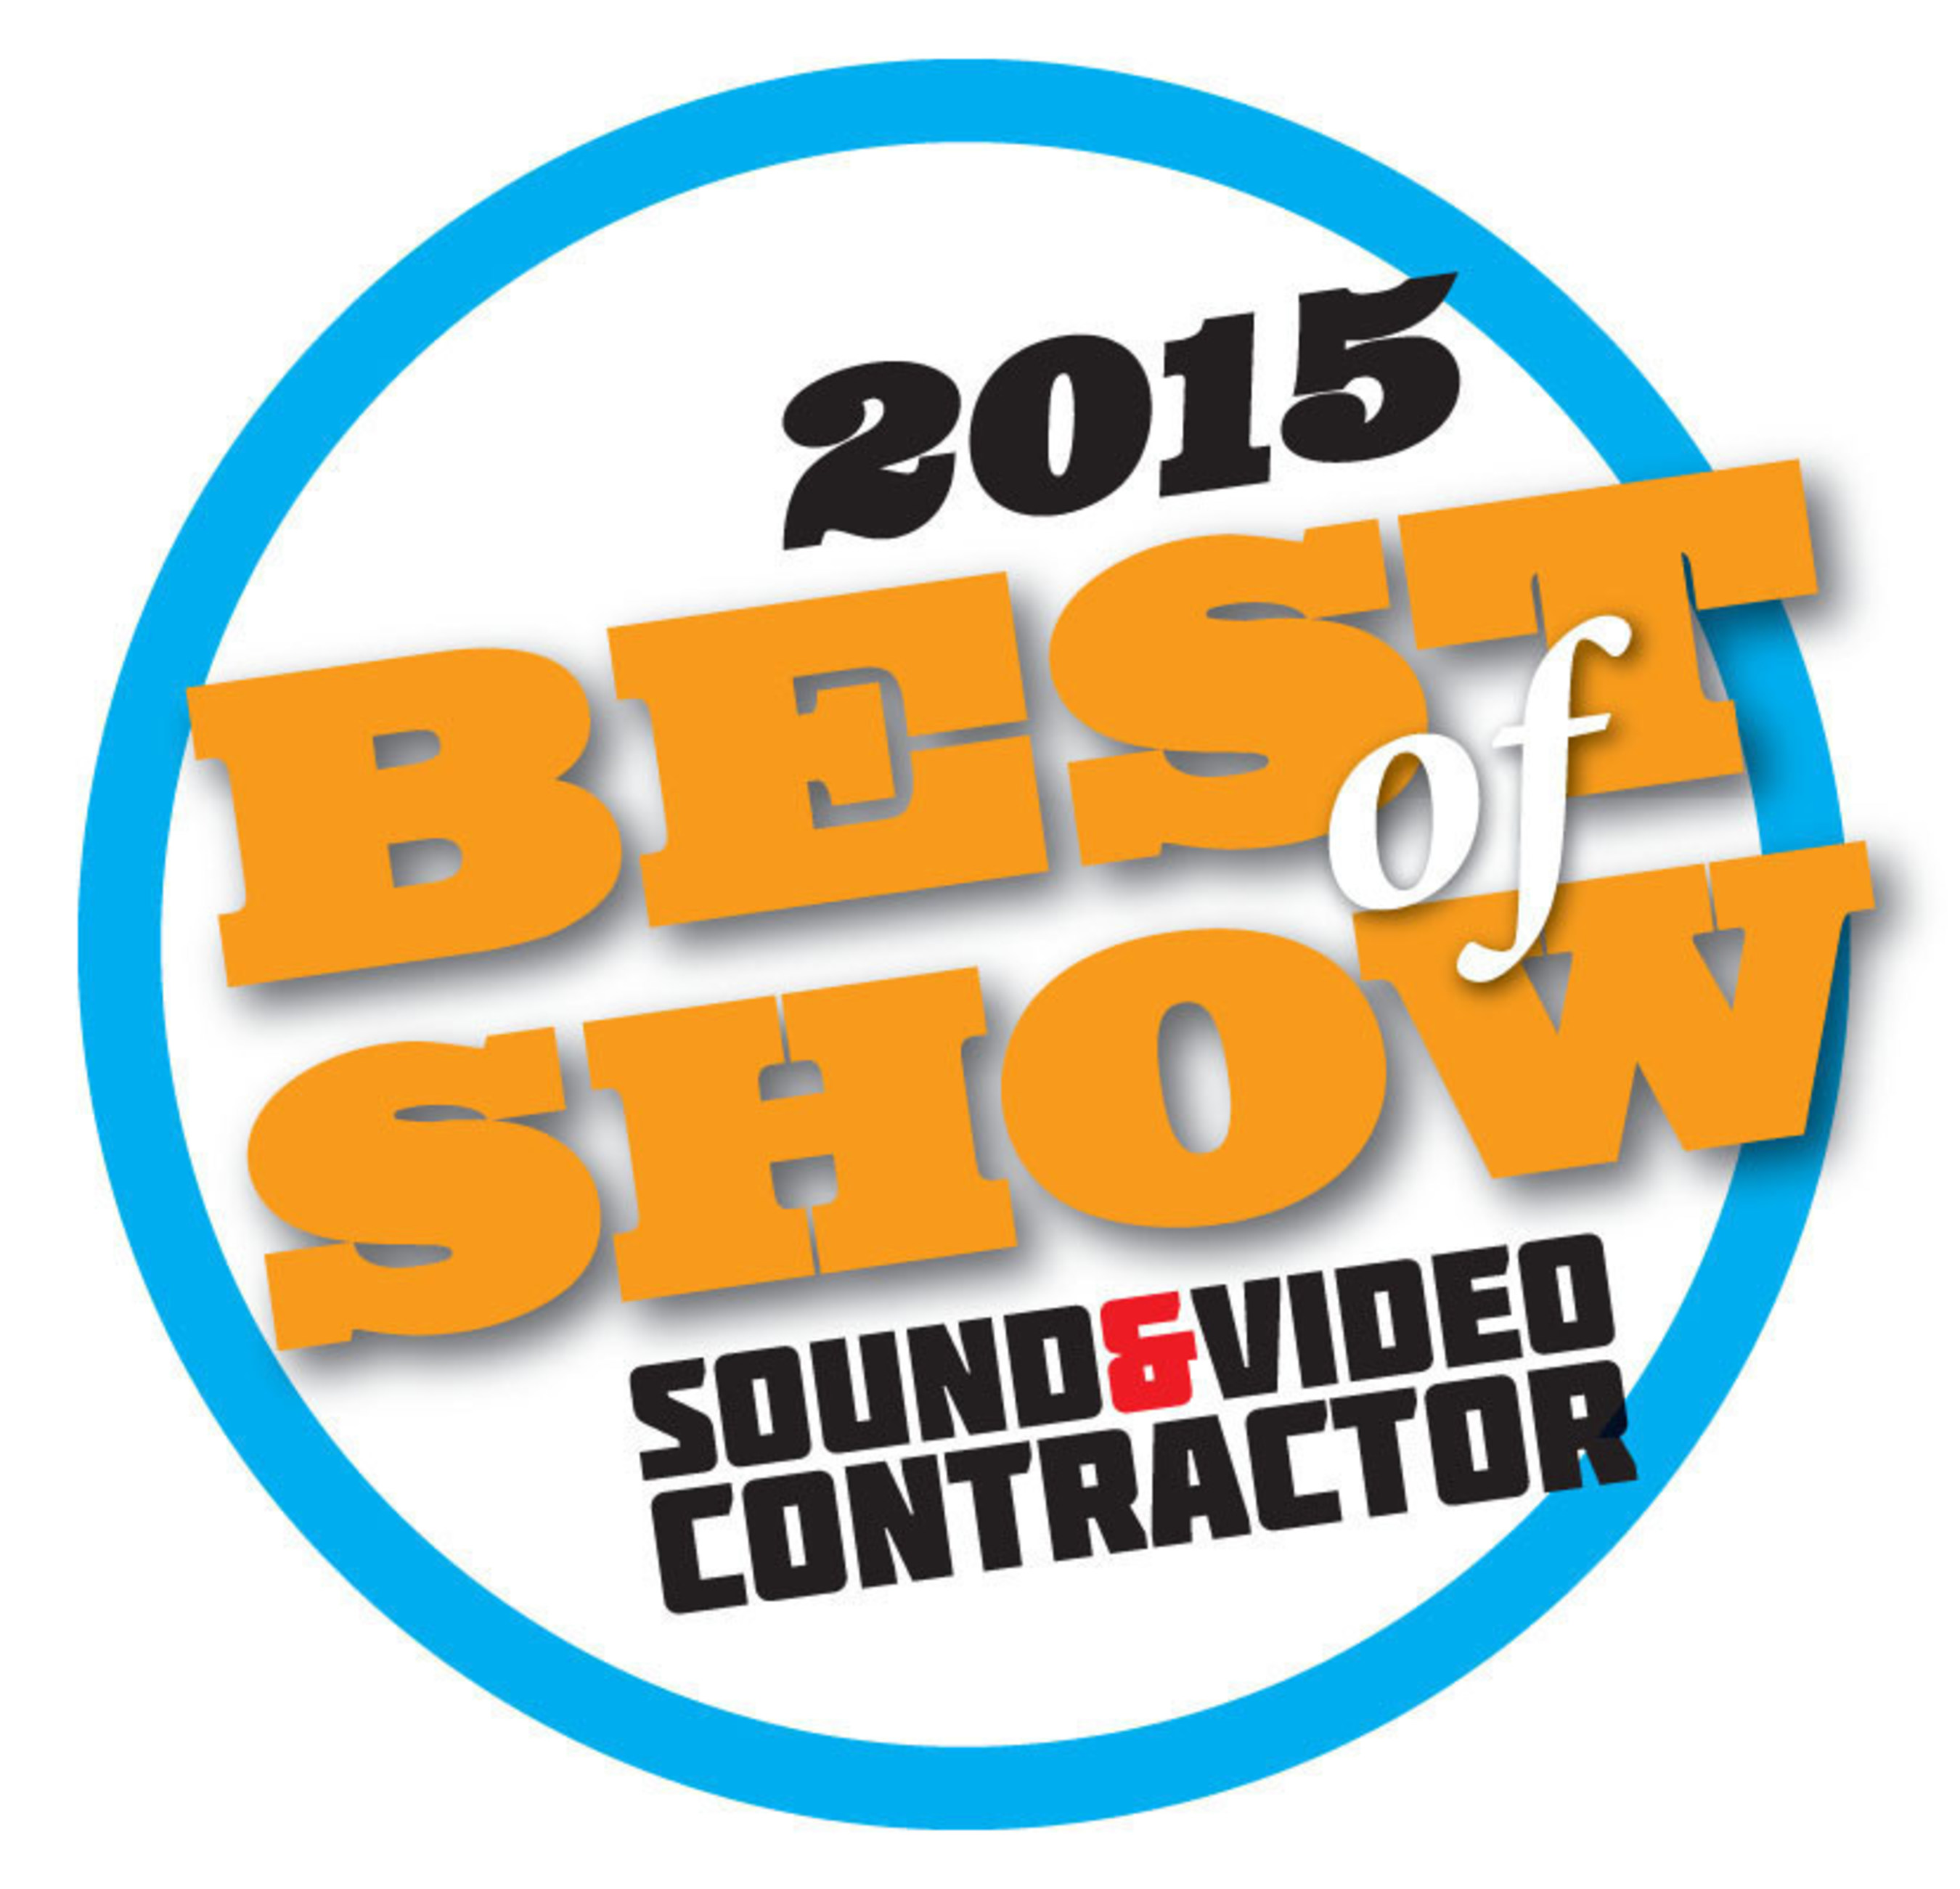 Thinklogical's TLX Series KVM System Wins NewBay Media's 'Best of Show' Award, Presented by Sound & Video Contractor at NAB 2015